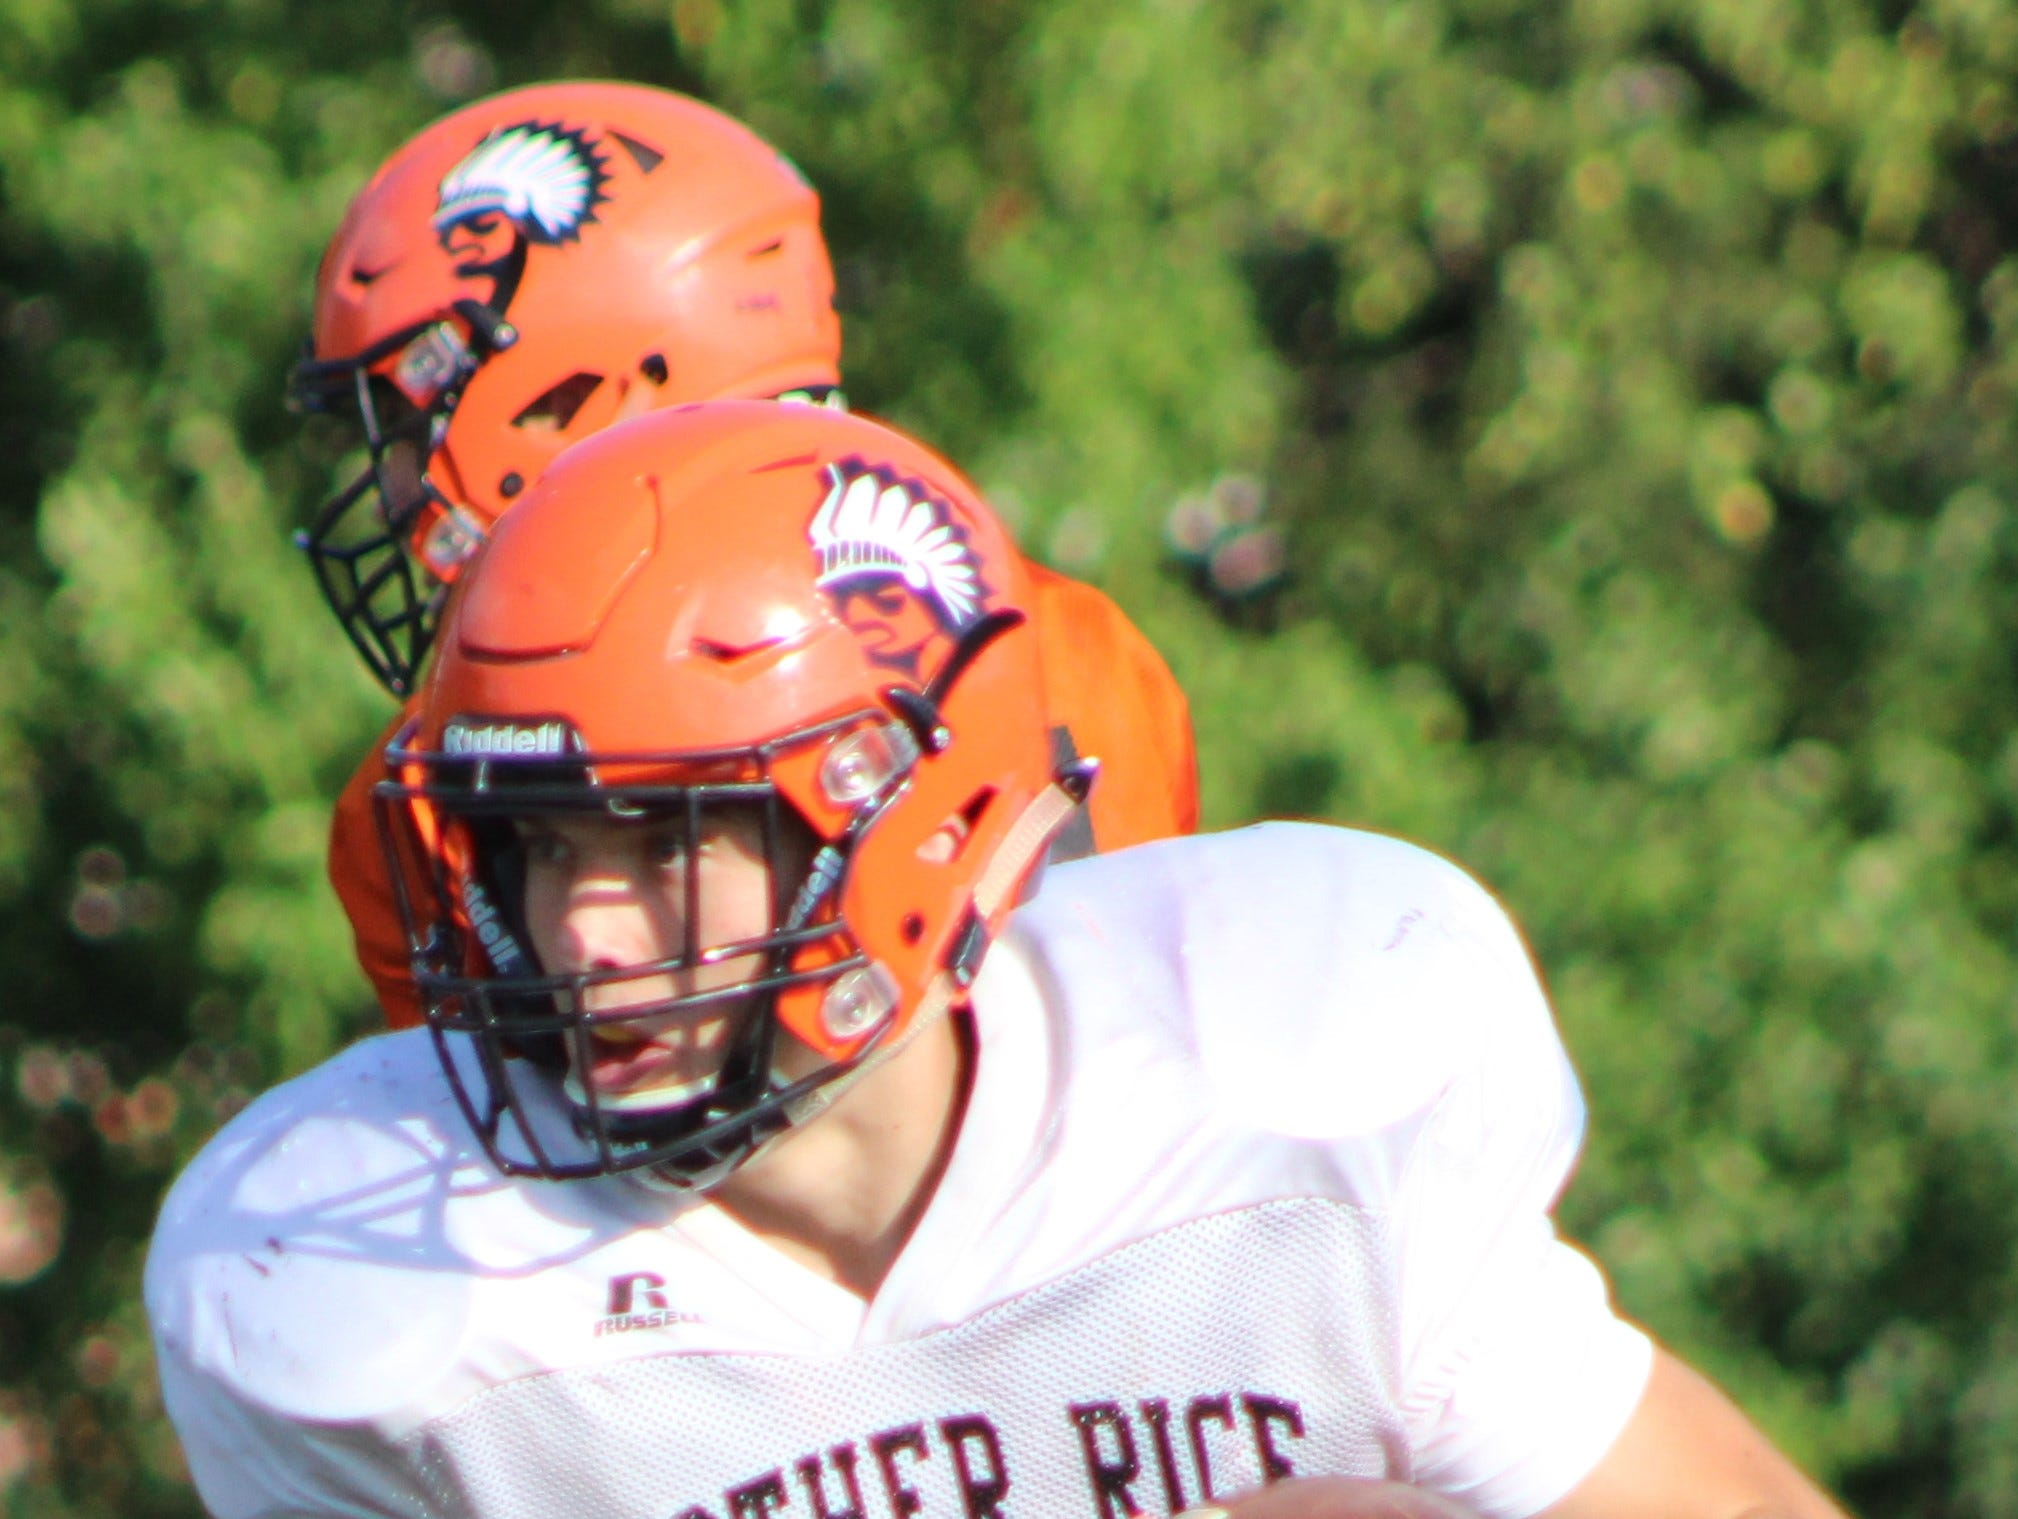 Senior James Donaldson and his Brother Rice teammates have moved to No. 1 in the weekly HTL Top-10 rankings.